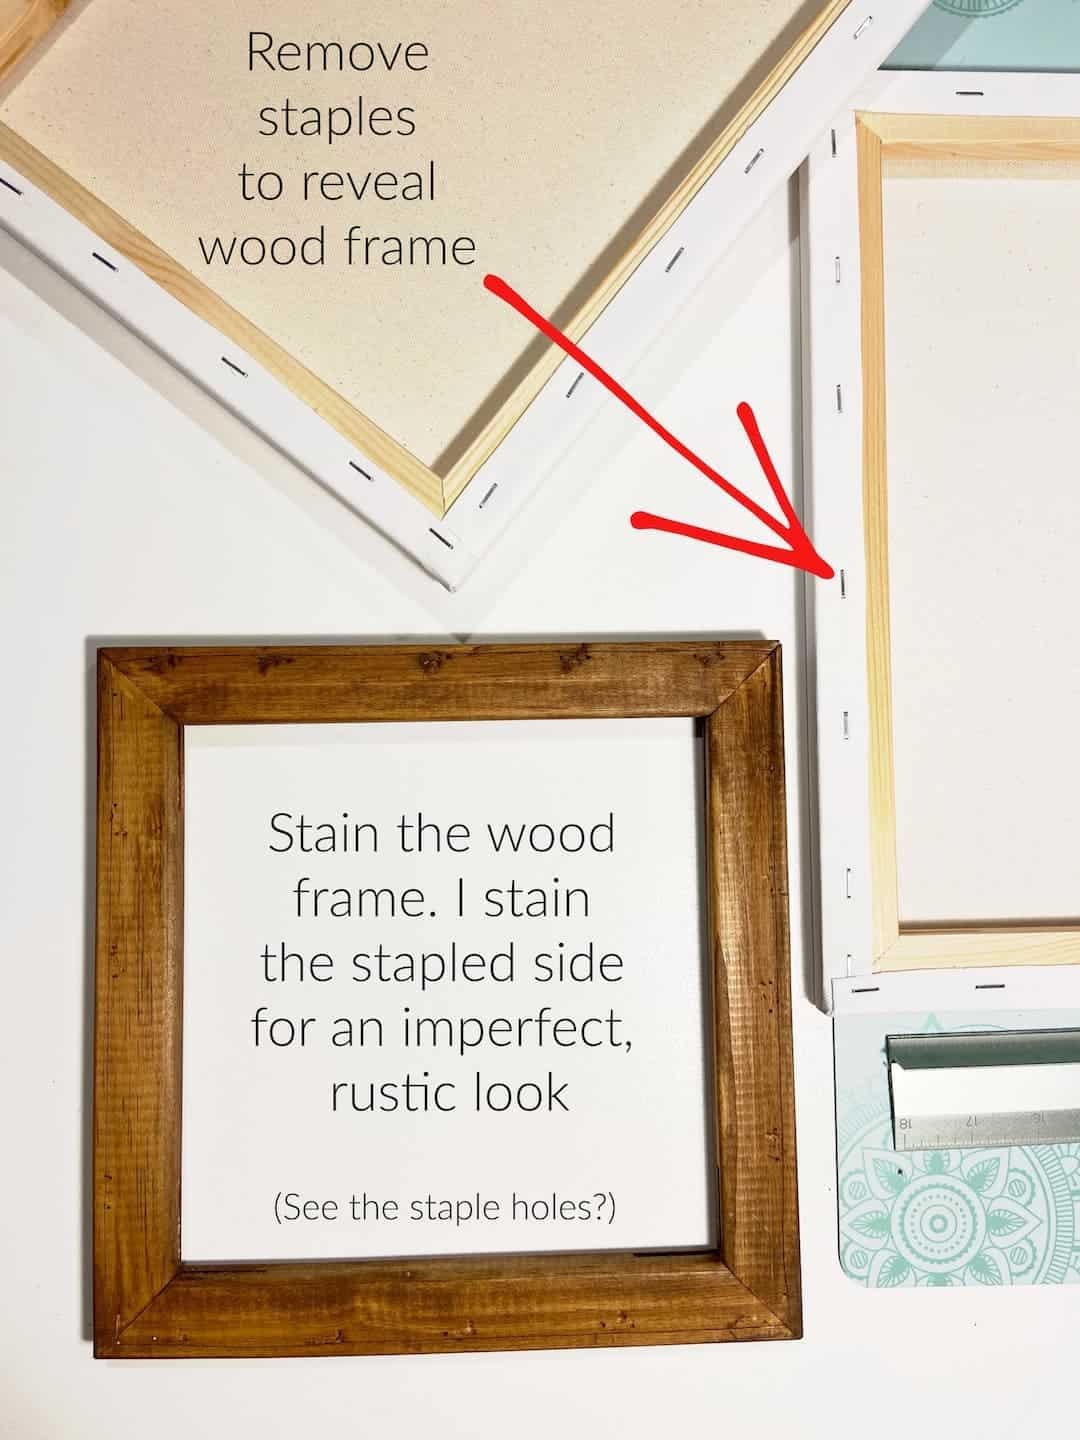 DIY Reverse Canvas Instructions by Snazzy Little Things